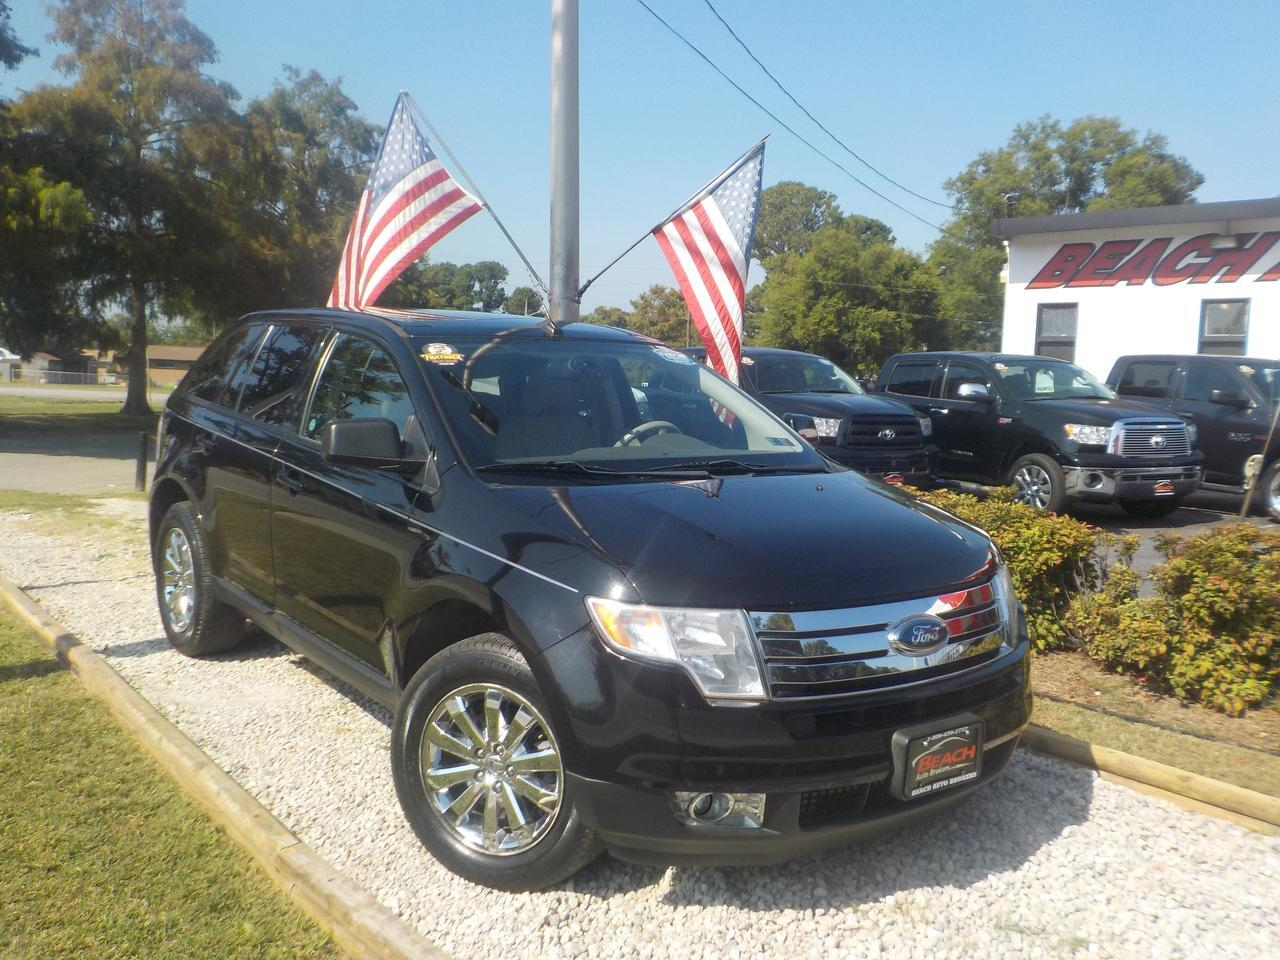 2008 FORD EDGE SEL, WARRANTY, PARKING SENSORS, HEATED SEATS, PANORAMIC ROOF, LOW MILES, 1 OWNER!